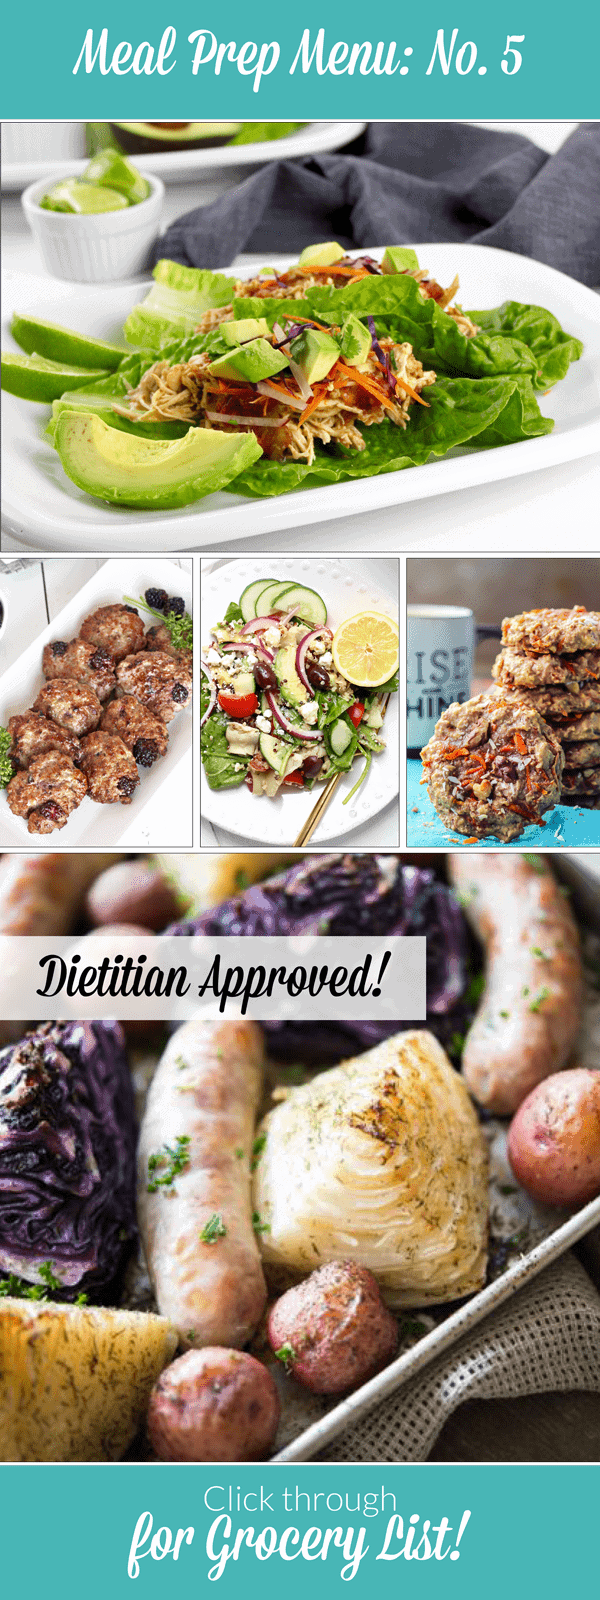 Weekly Meal Prep Menu: No. 5 | The Real Food Dietitians | https://therealfoodrds.com/weekly-meal-prep-menu-no-5/